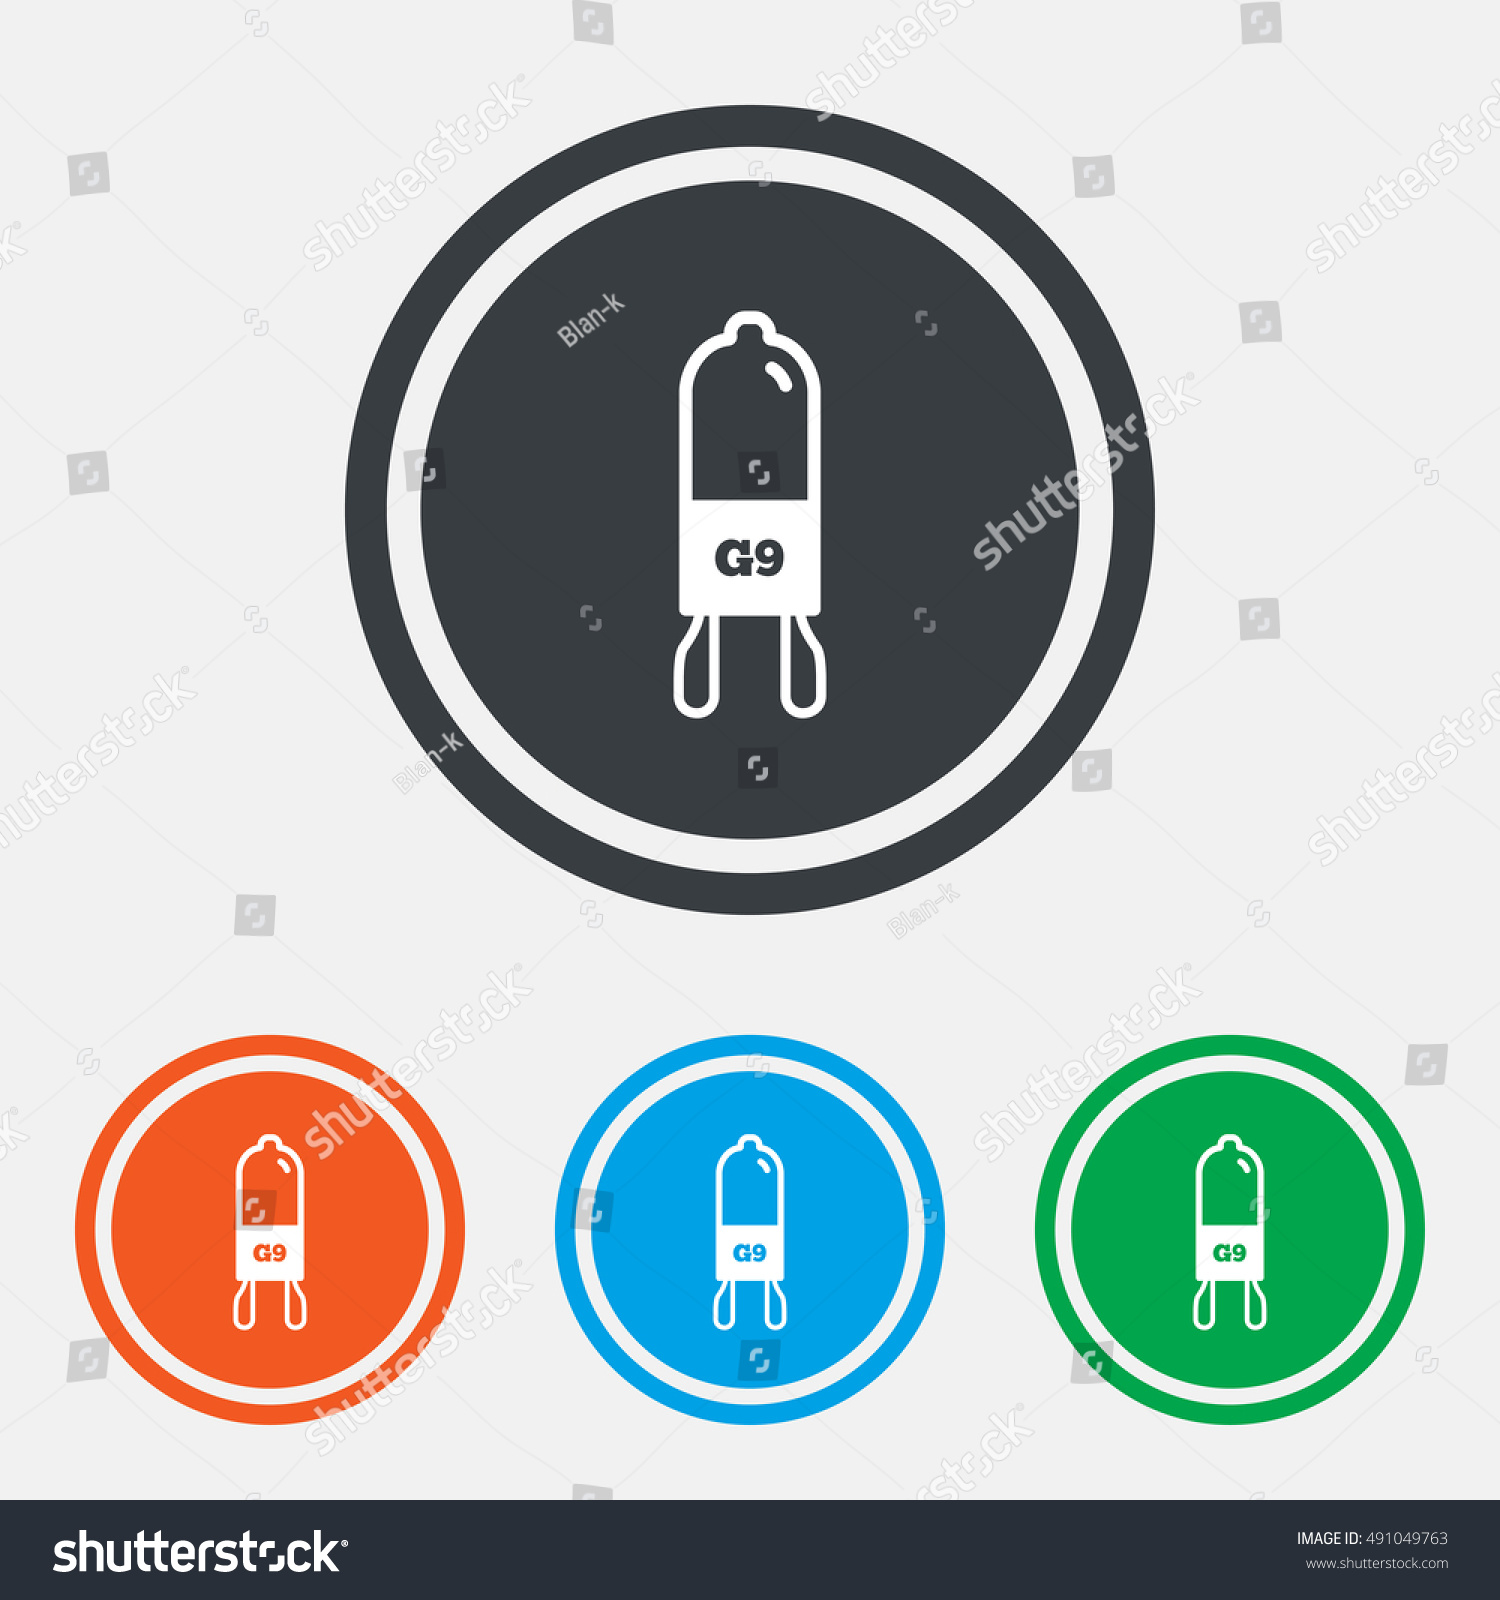 Light bulb icon lamp g9 socket stock vector 491049763 shutterstock light bulb icon lamp g9 socket symbol led or halogen light sign graphic biocorpaavc Images